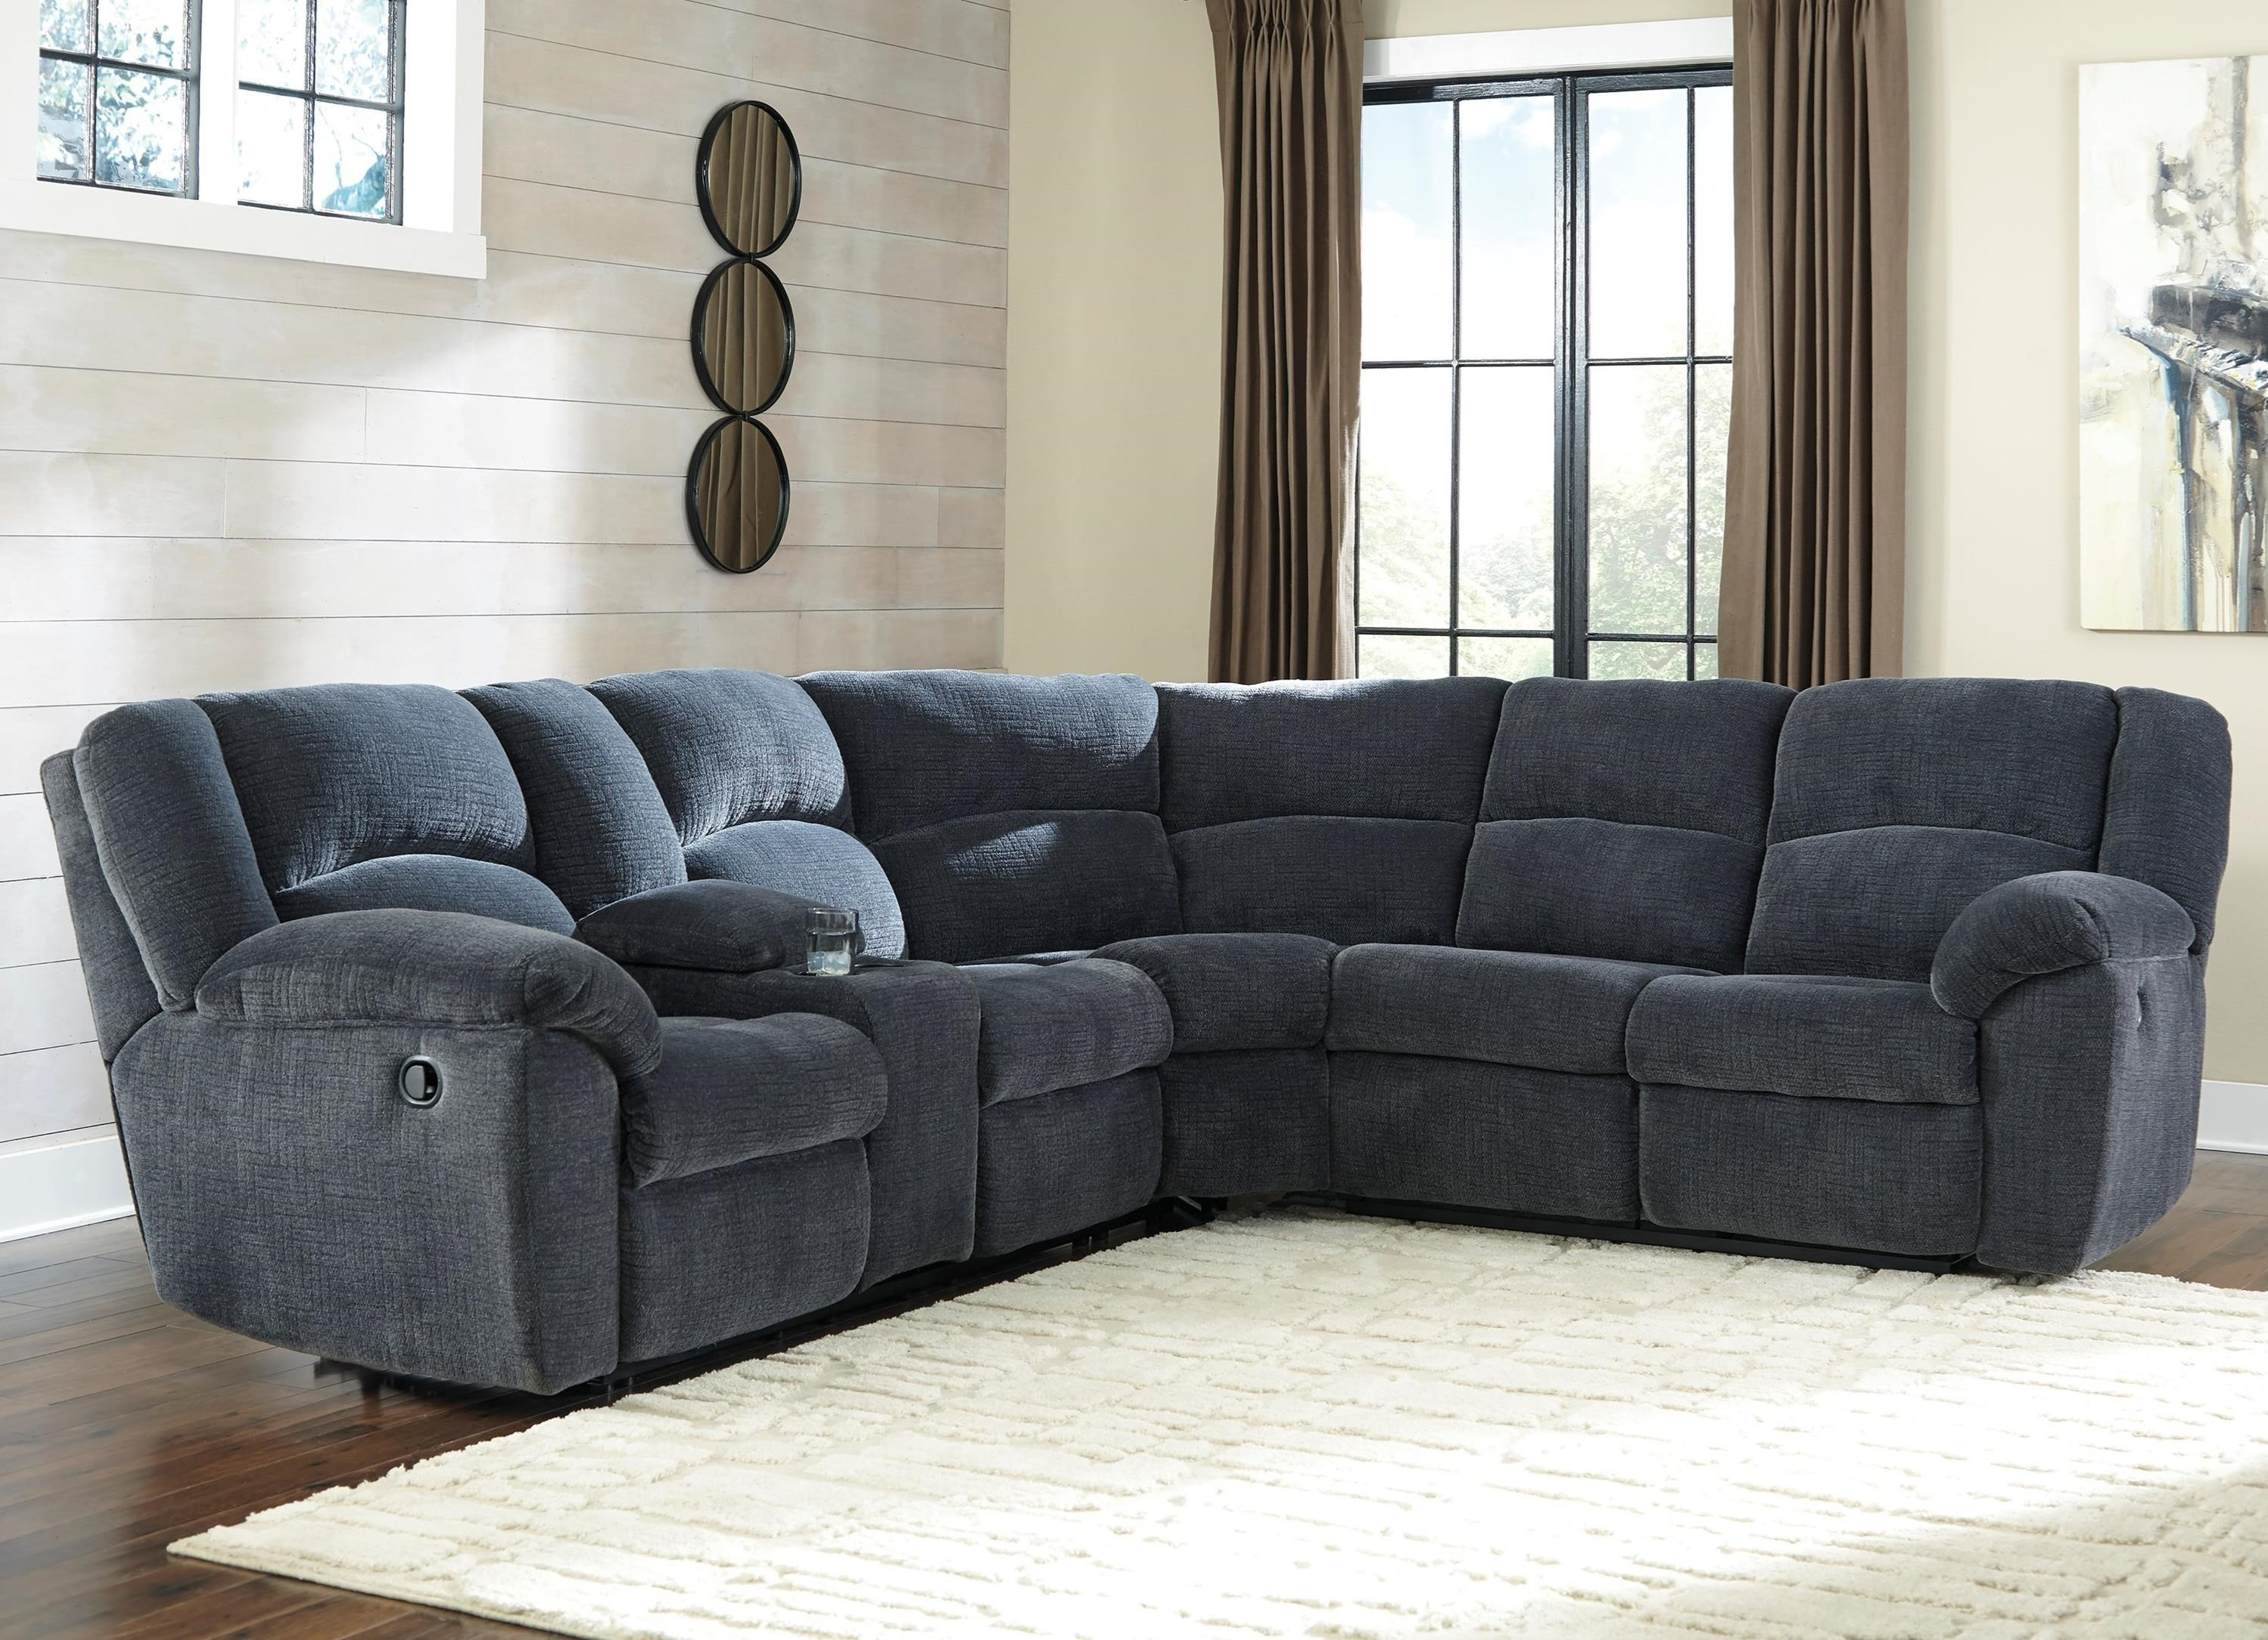 Best Kitchen Gallery: Benchcraft Timpson Reclining Sectional With Storage Console of Loveseat Sectional  on rachelxblog.com